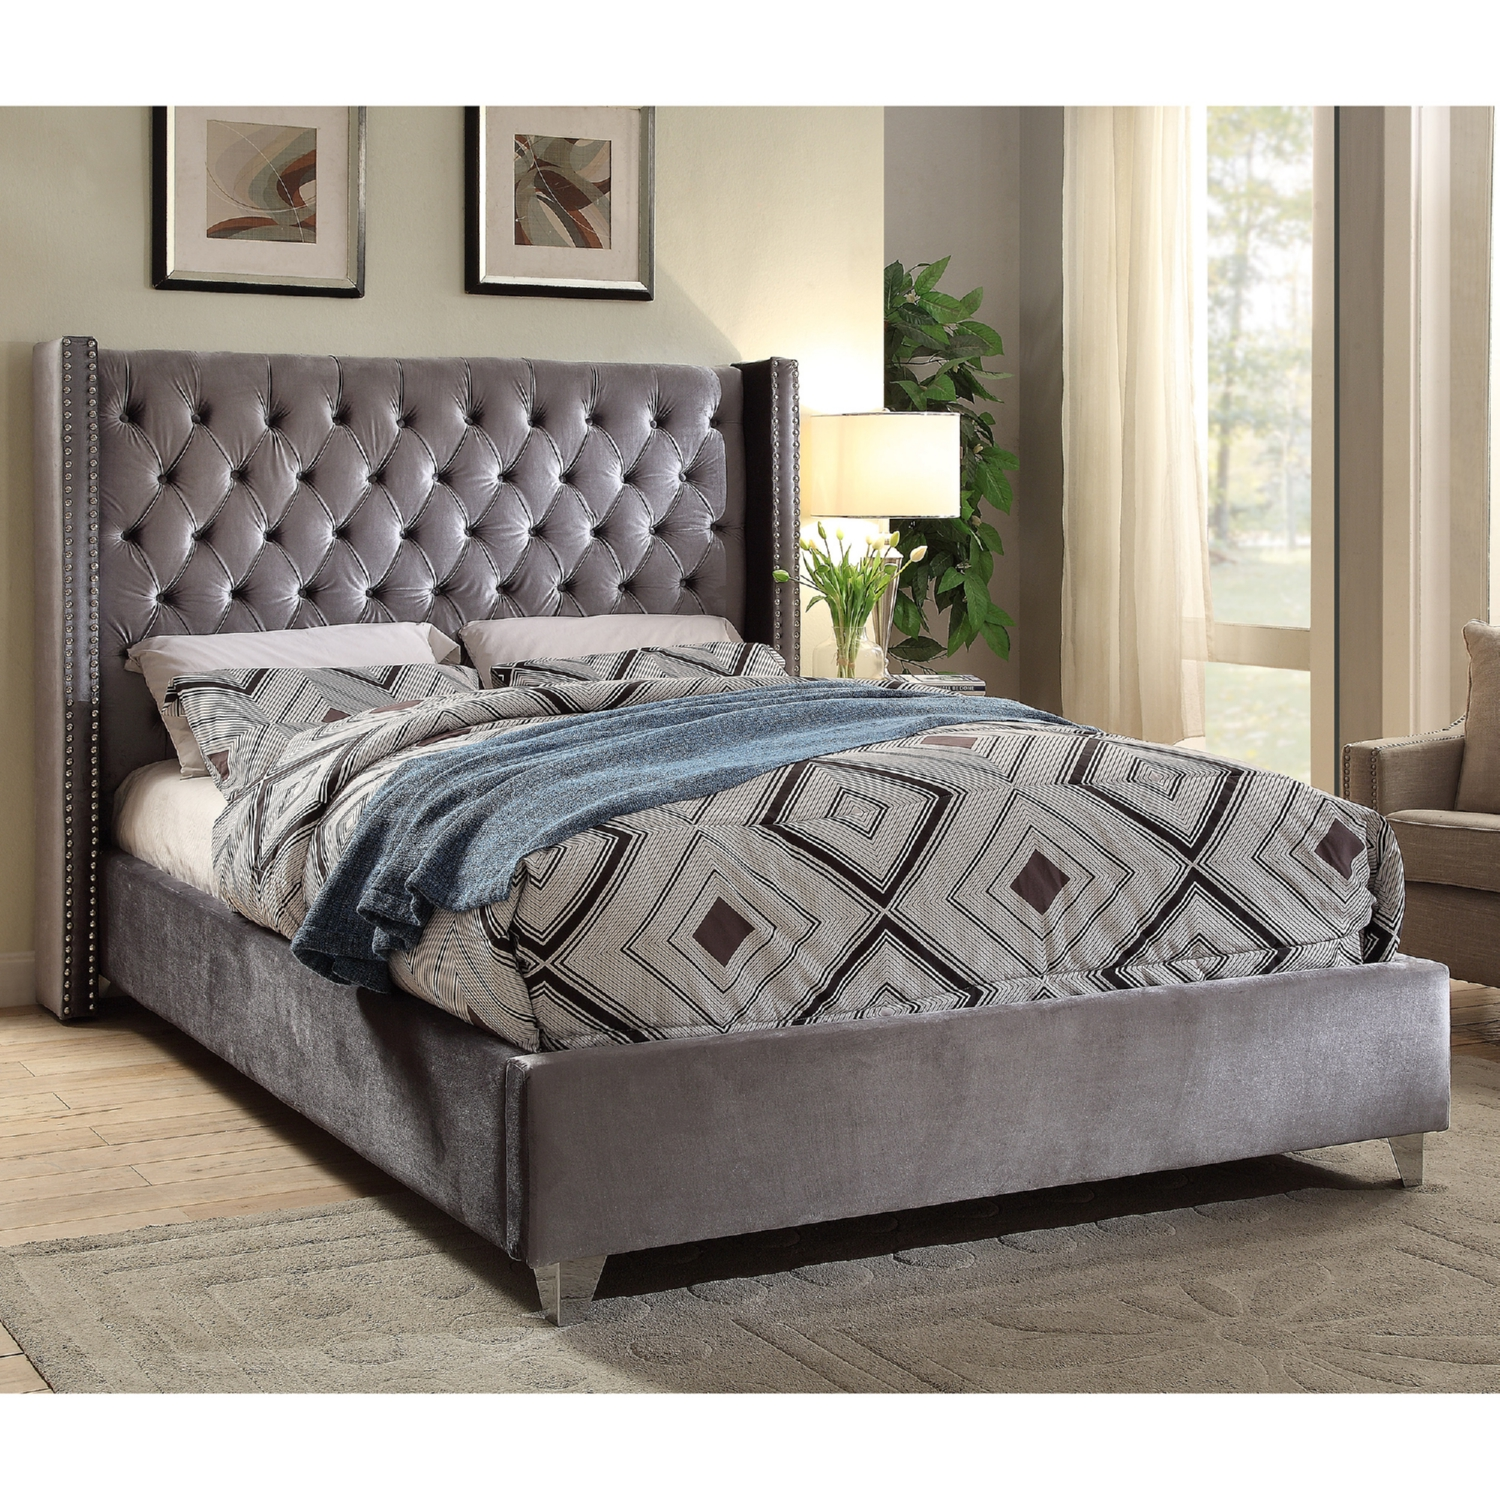 Bedroom  Home Furnishings  Lexington Home Brands